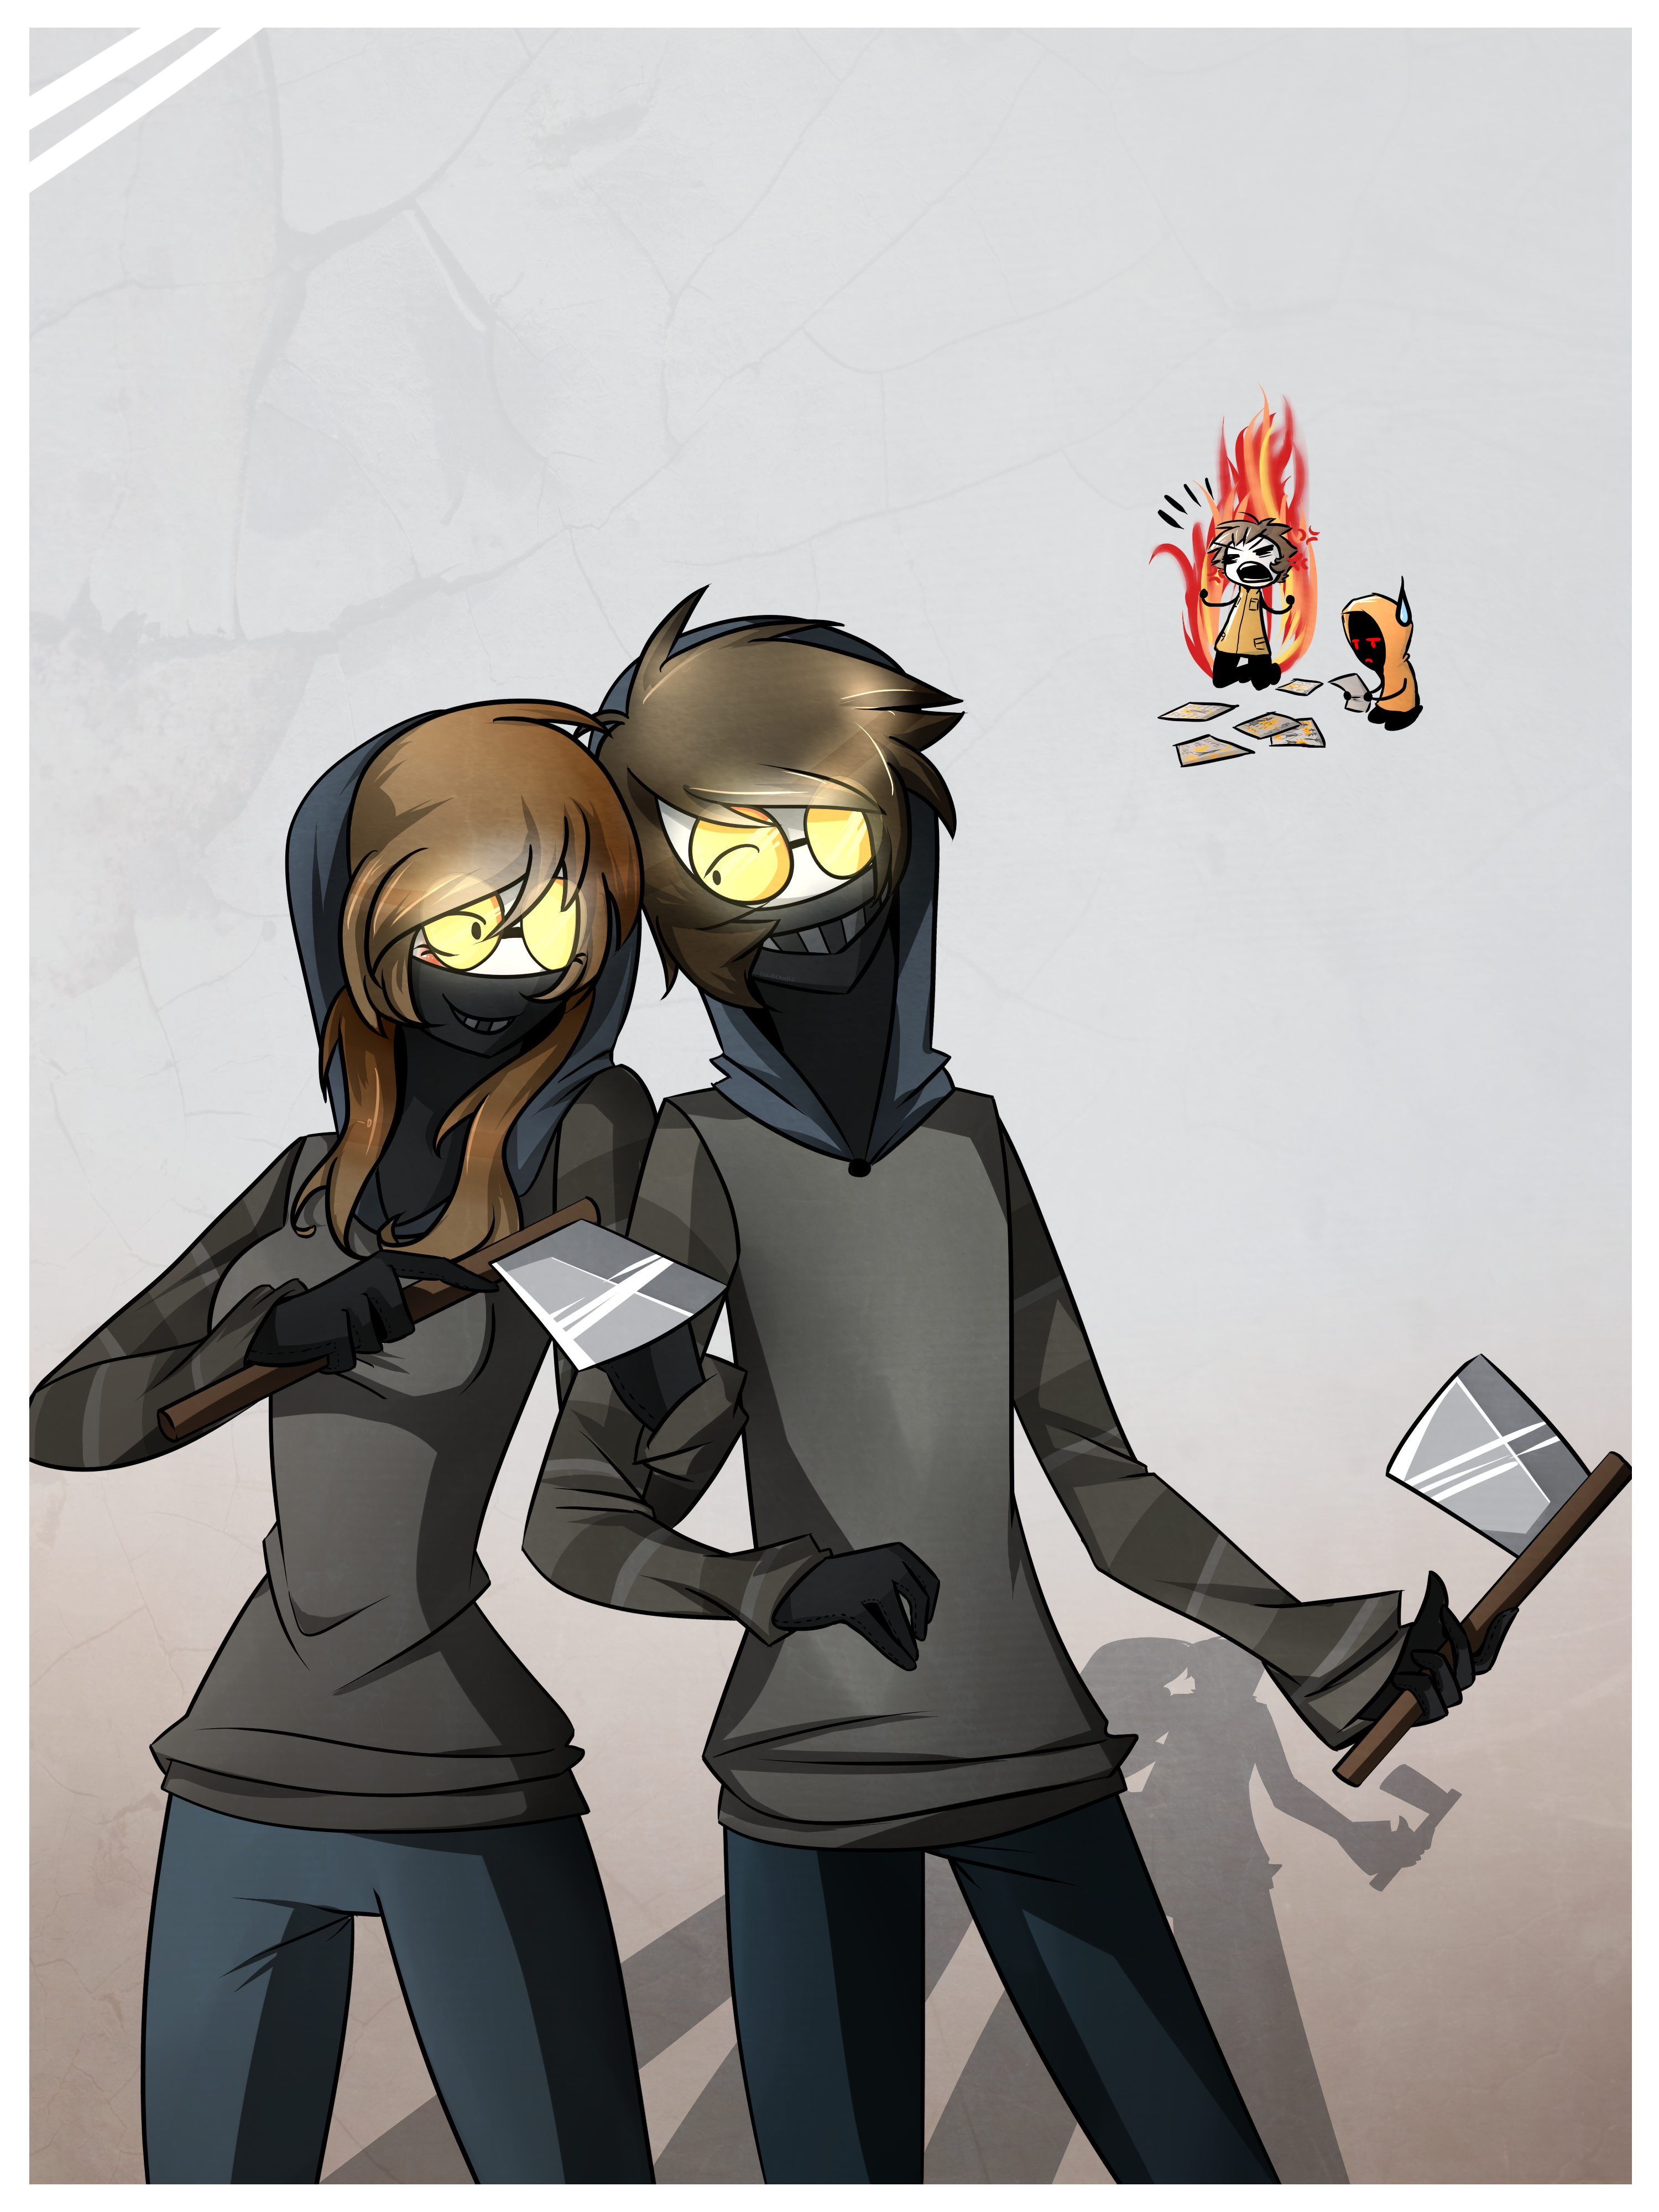 Ticci Toby and Ticci Tina by 1Day4Dreams on DeviantArt